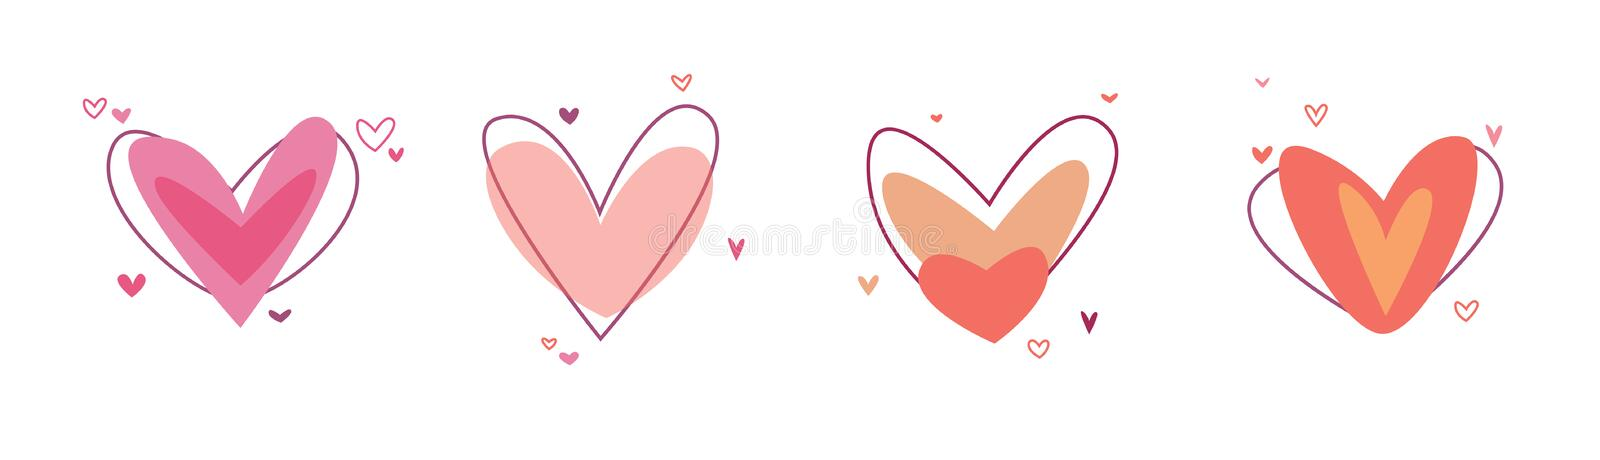 Creative red hearts icon set. Valentines day sign symbol template. Flat design. Love greeting card. Design style stock illustration